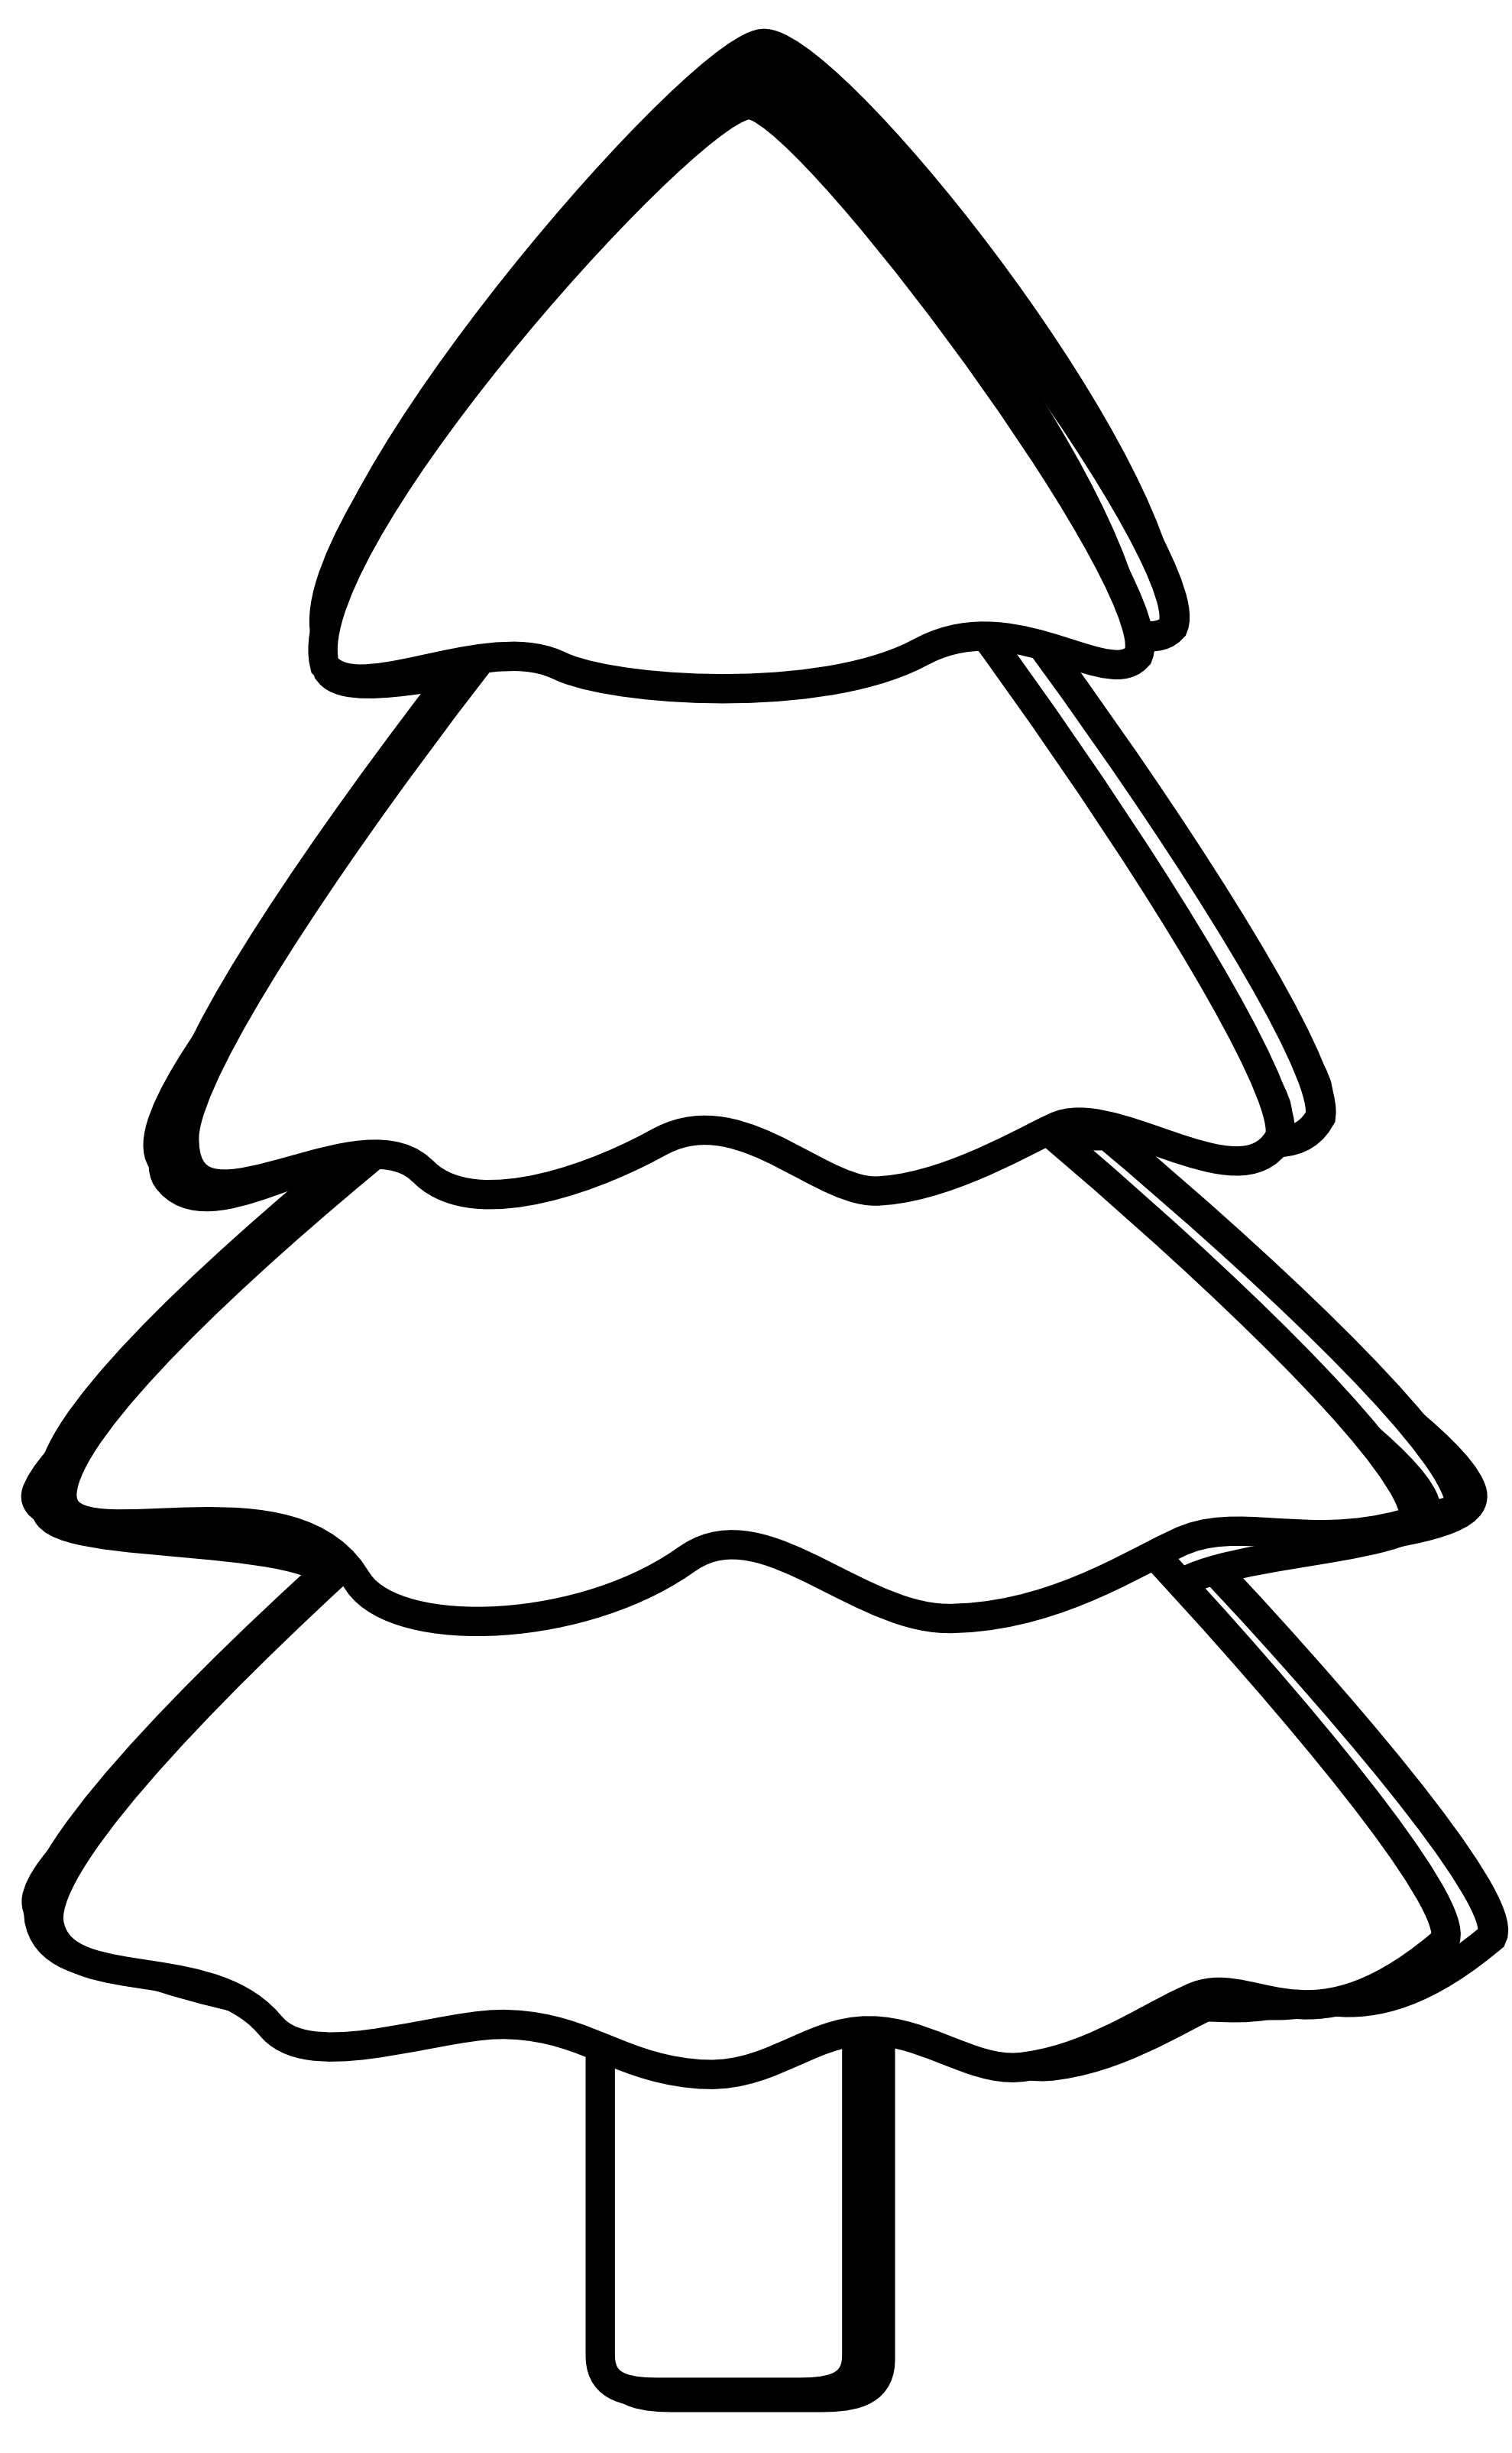 Christmas Tree Clip Art Black And White - ClipArt Best